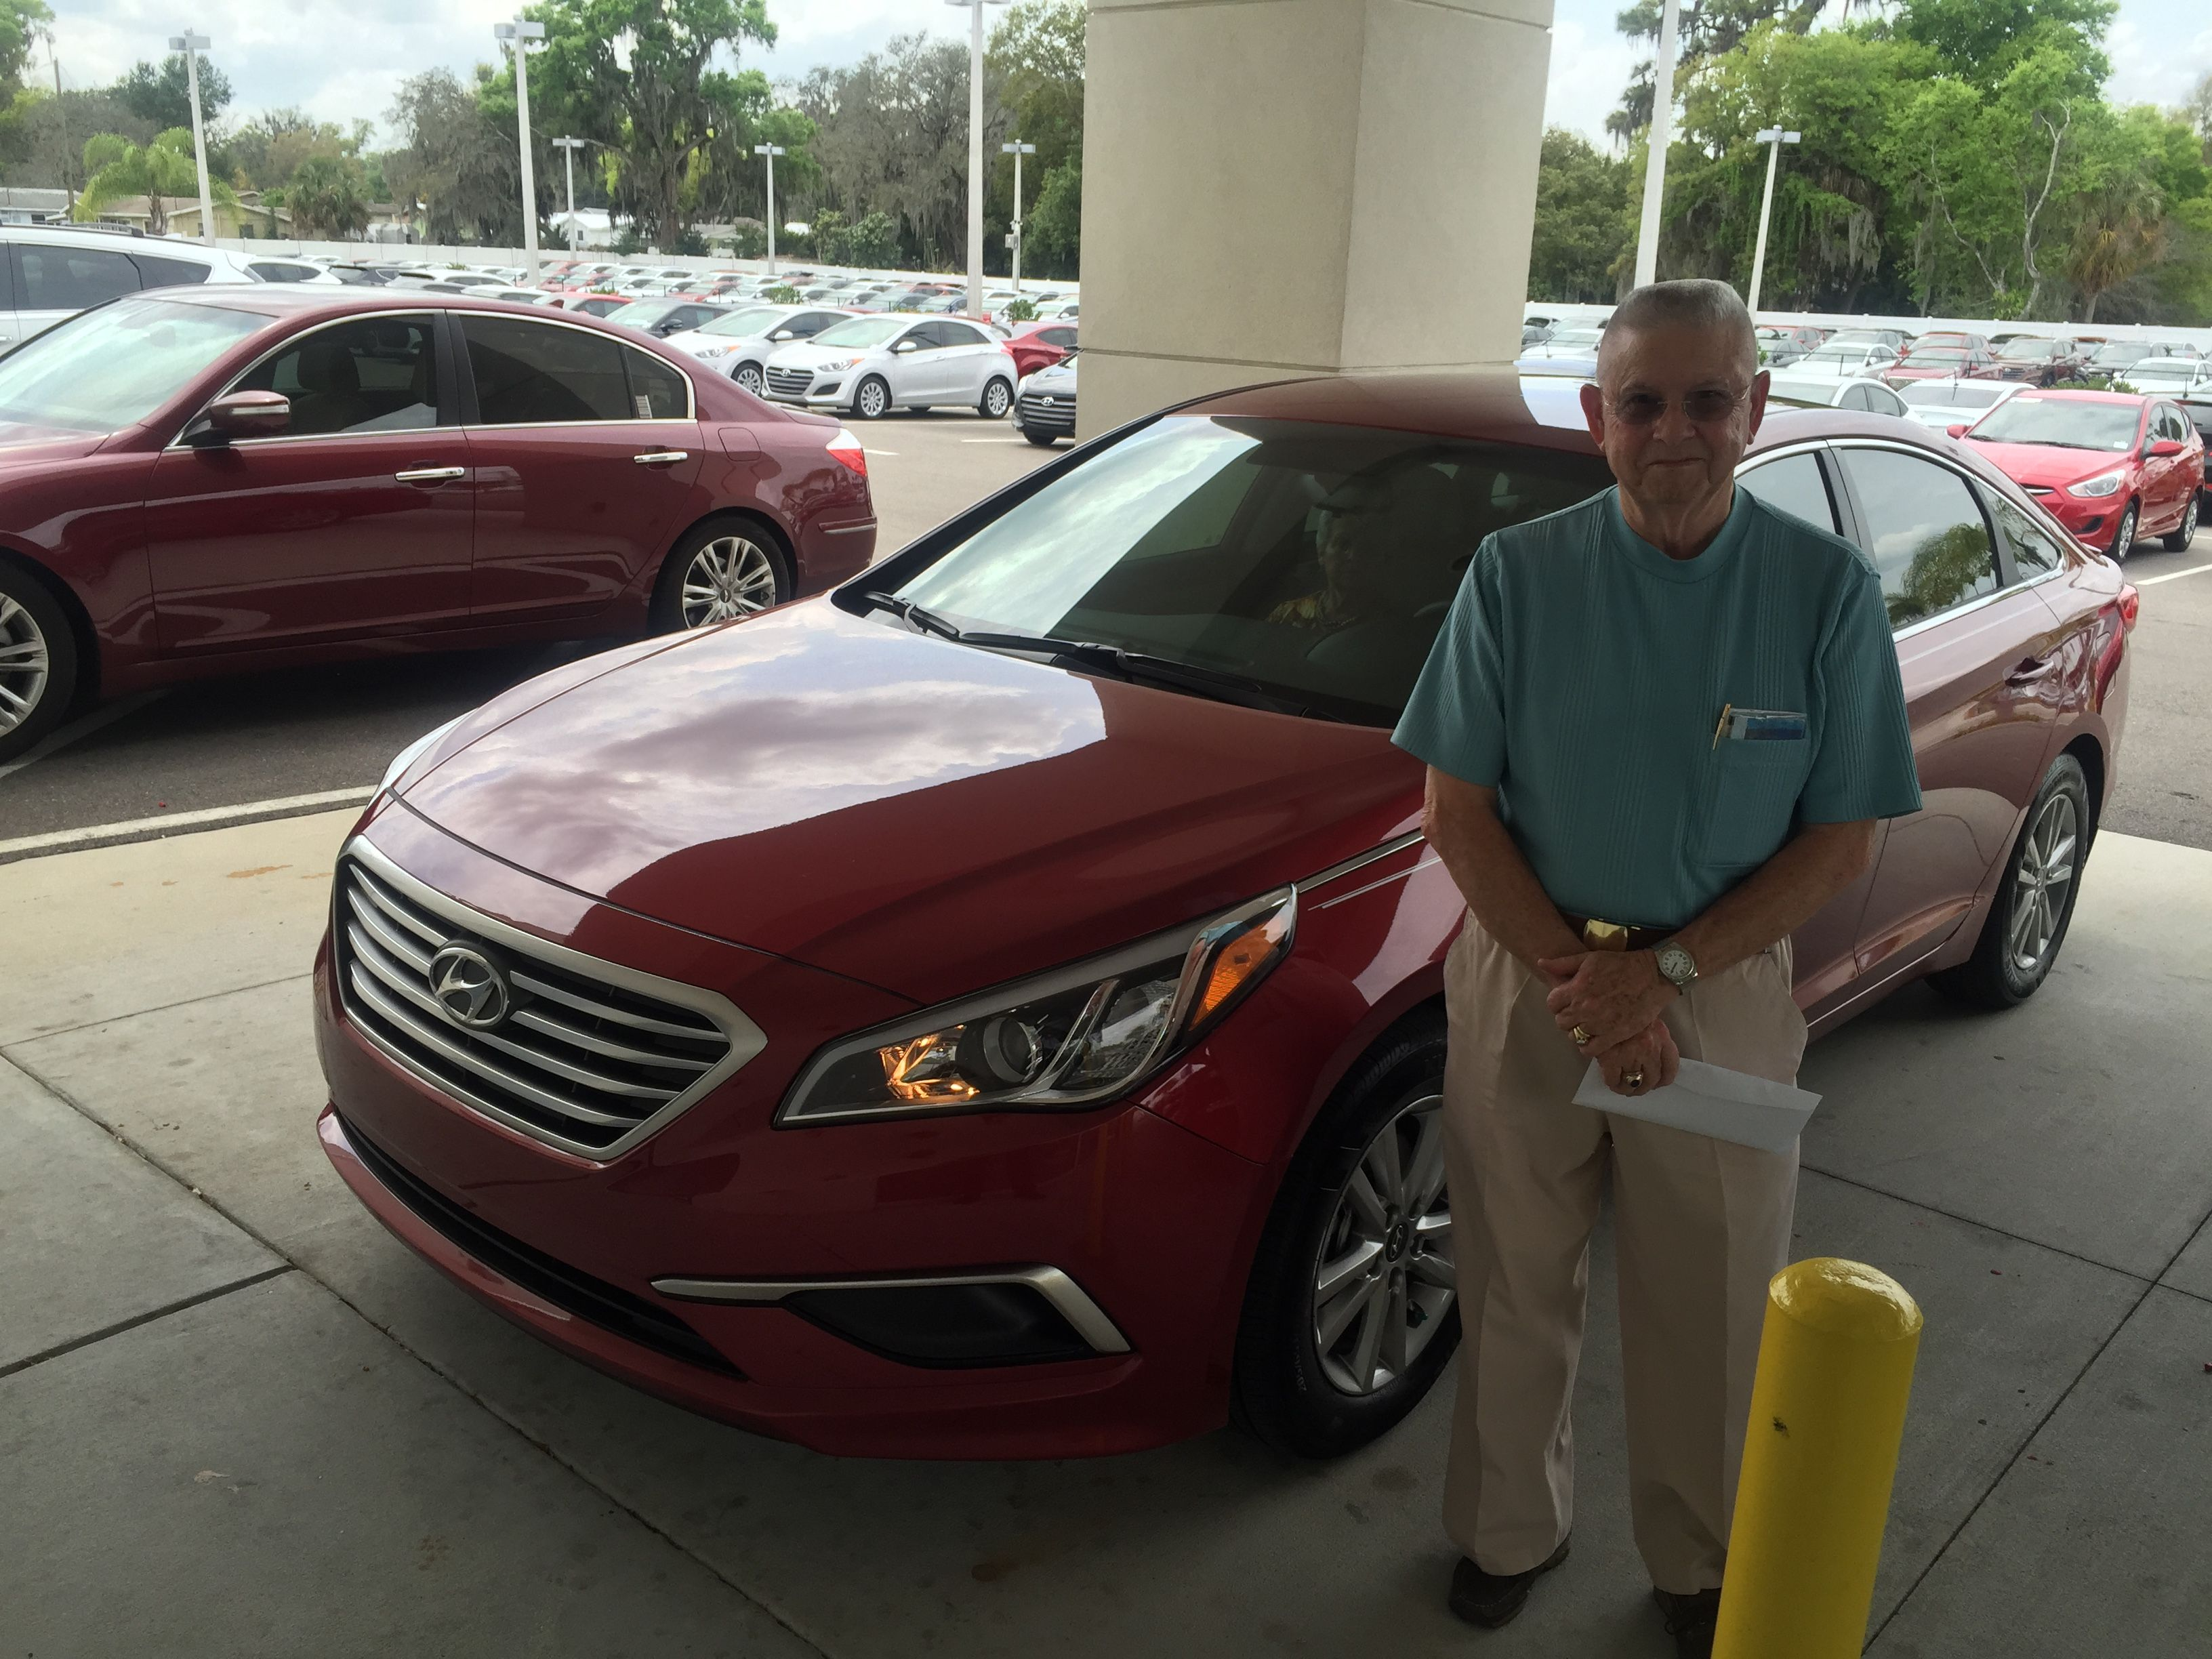 full auburndale bartow winter used kissimmee sonata hyundai sales here lake pay buy city four gls wales davenport car sale ray haines dealer haven listings rays corners motor s lakeland for